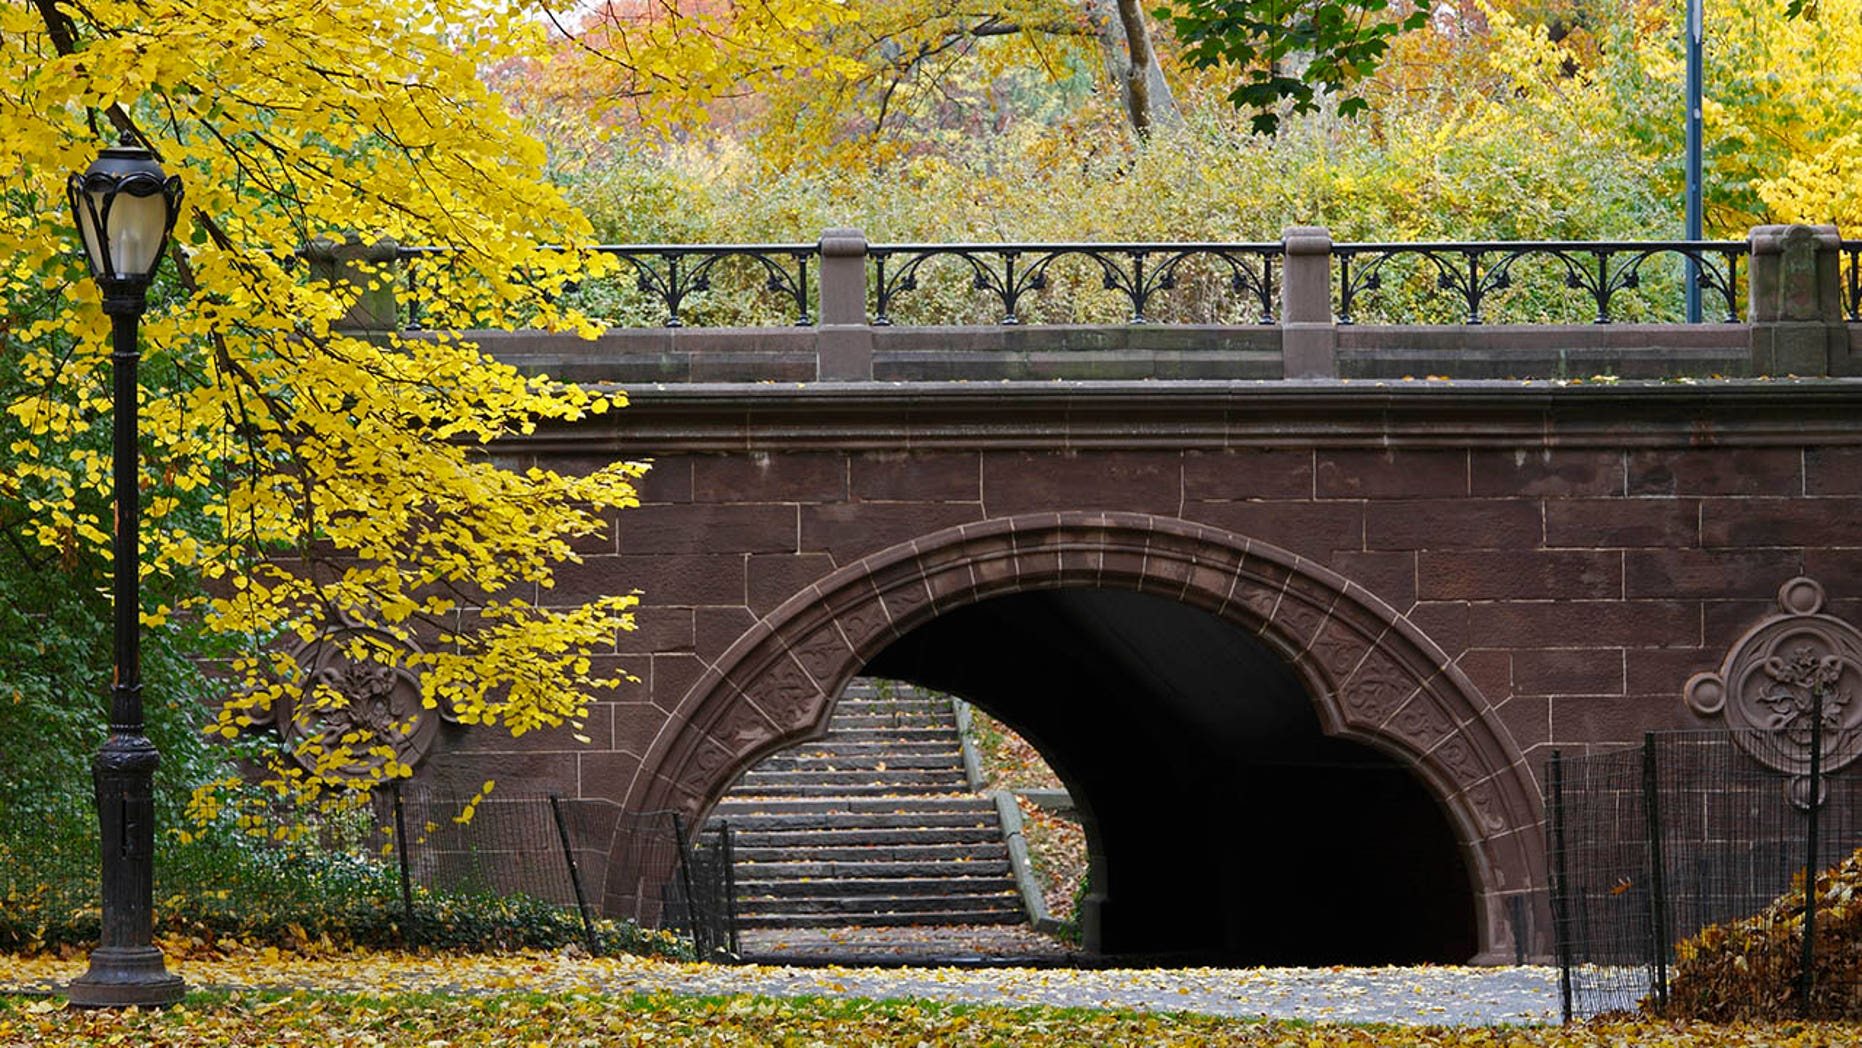 A man was found hanging from an overpass like this one, in an apparent suicide early Friday in New York's Central Park